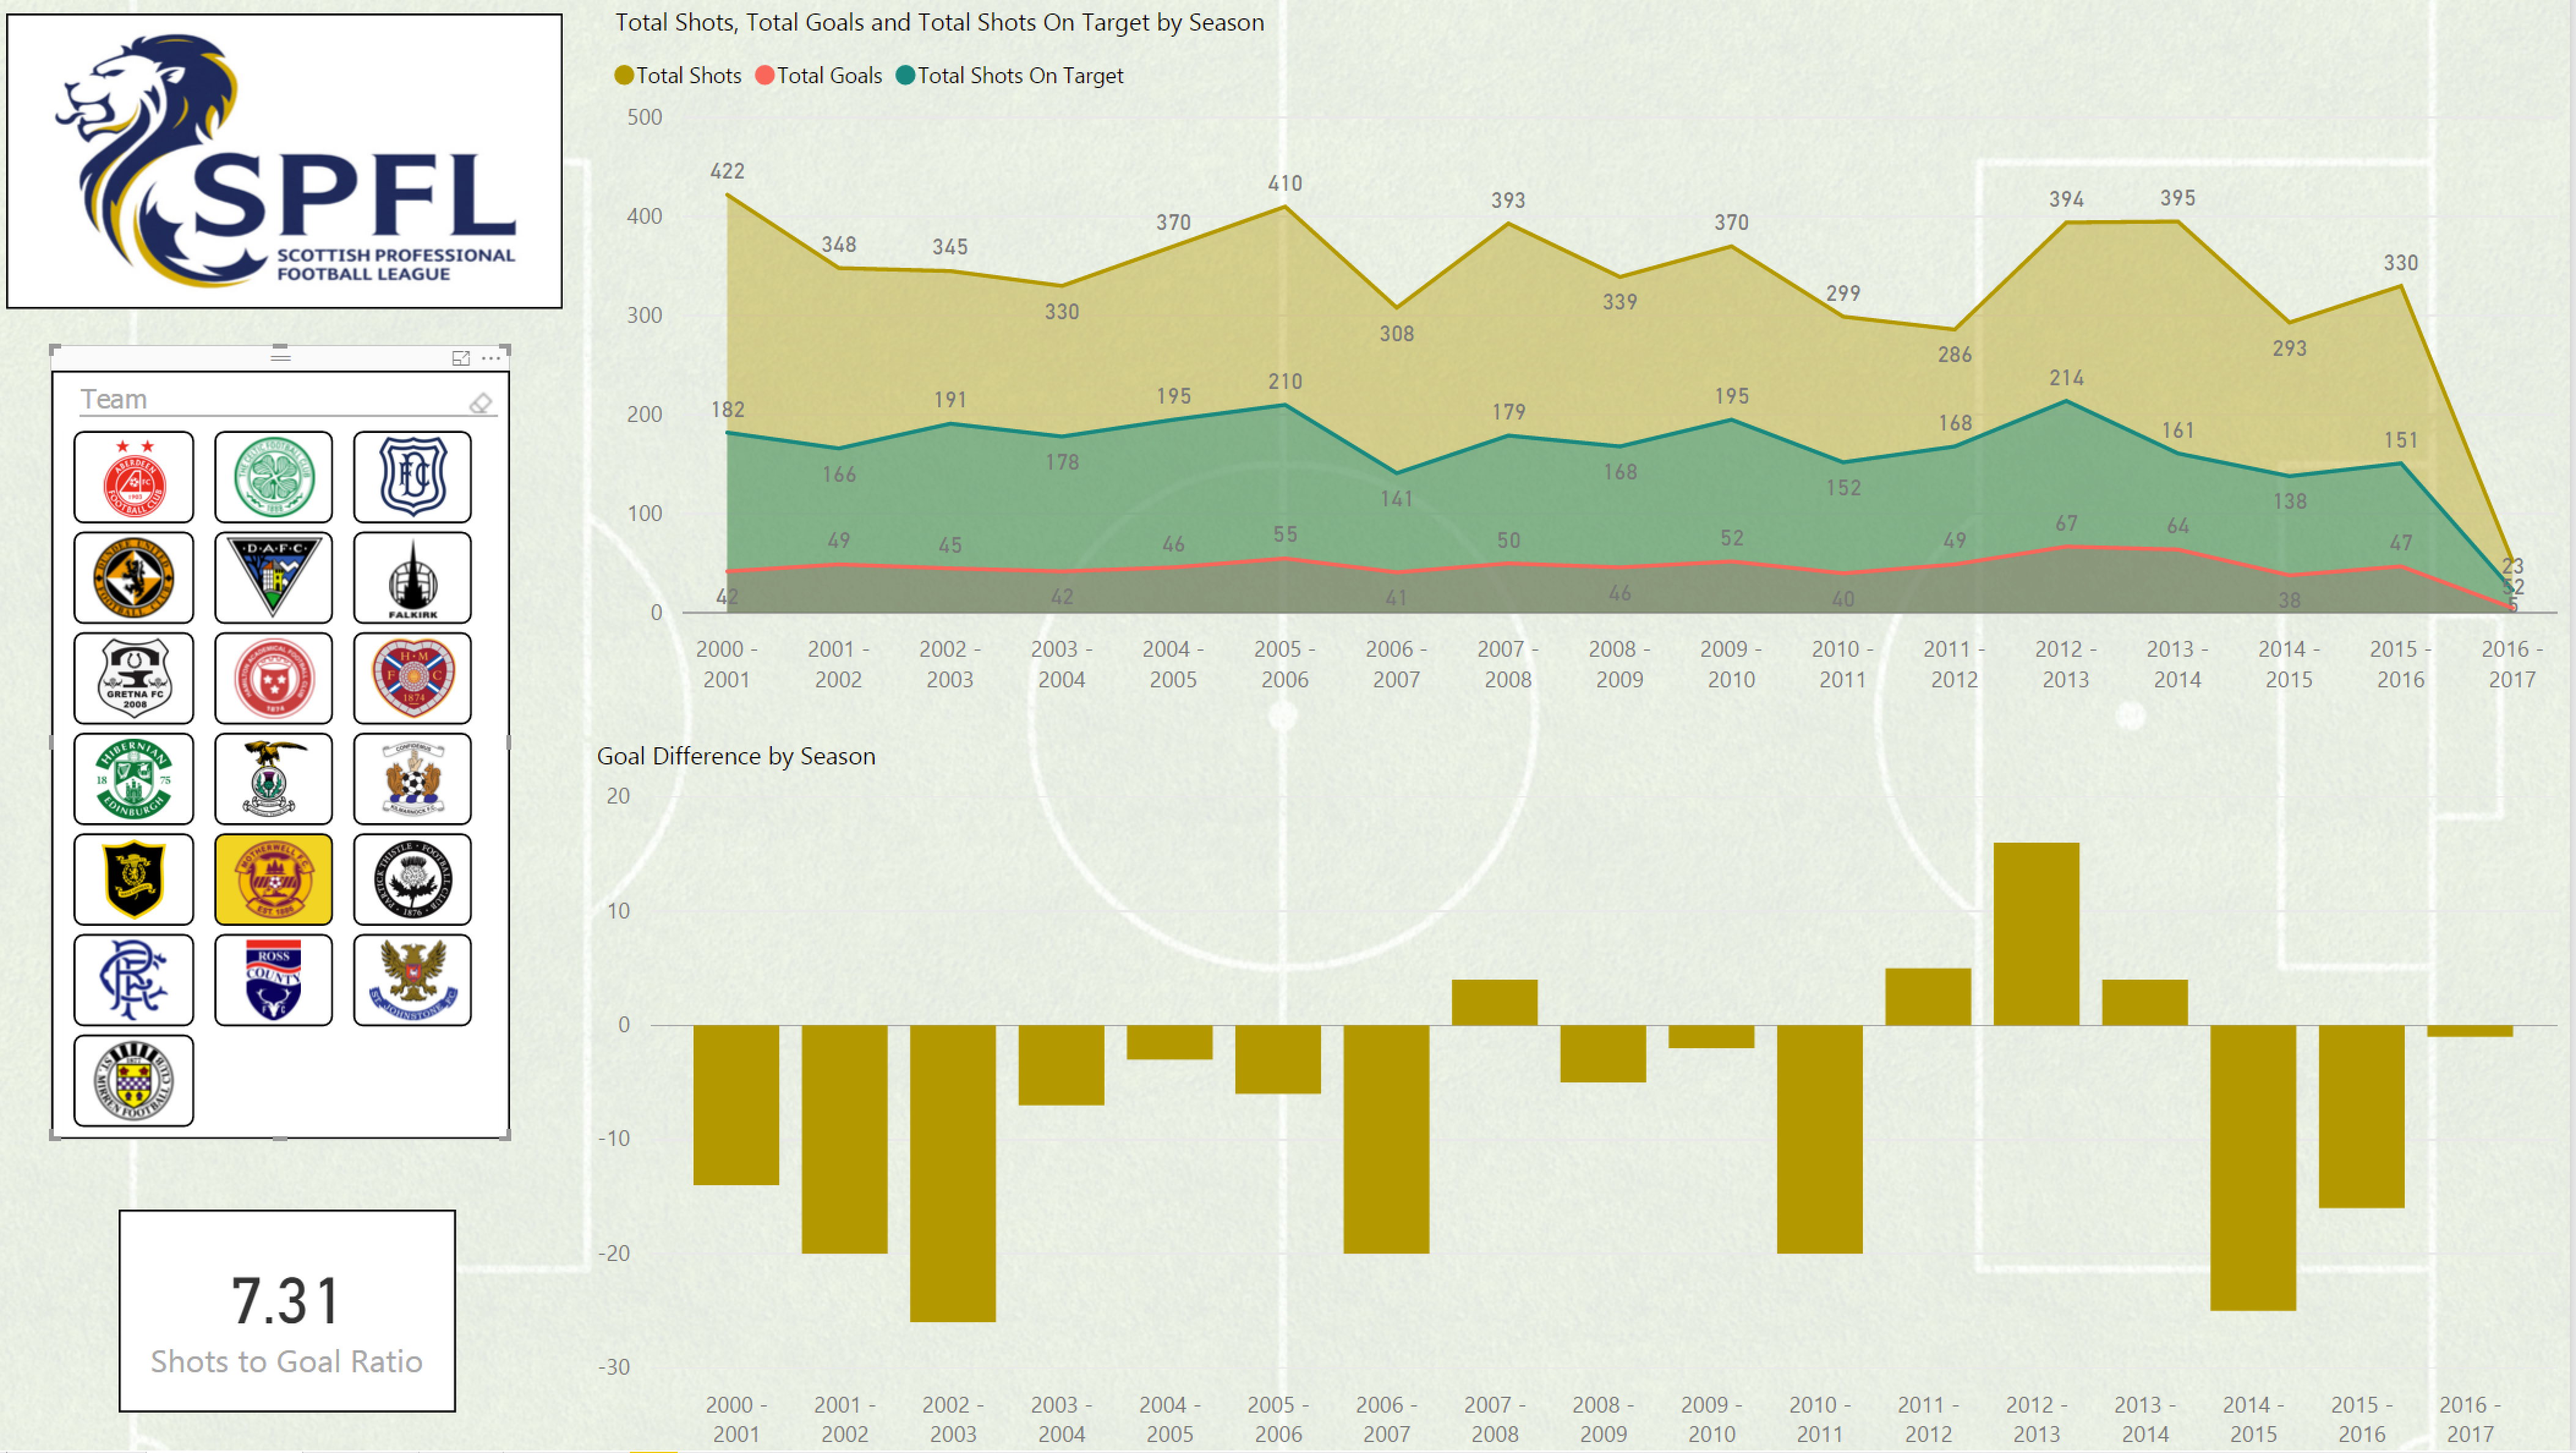 Data Stories Gallery - Page 24 - Microsoft Power BI Community